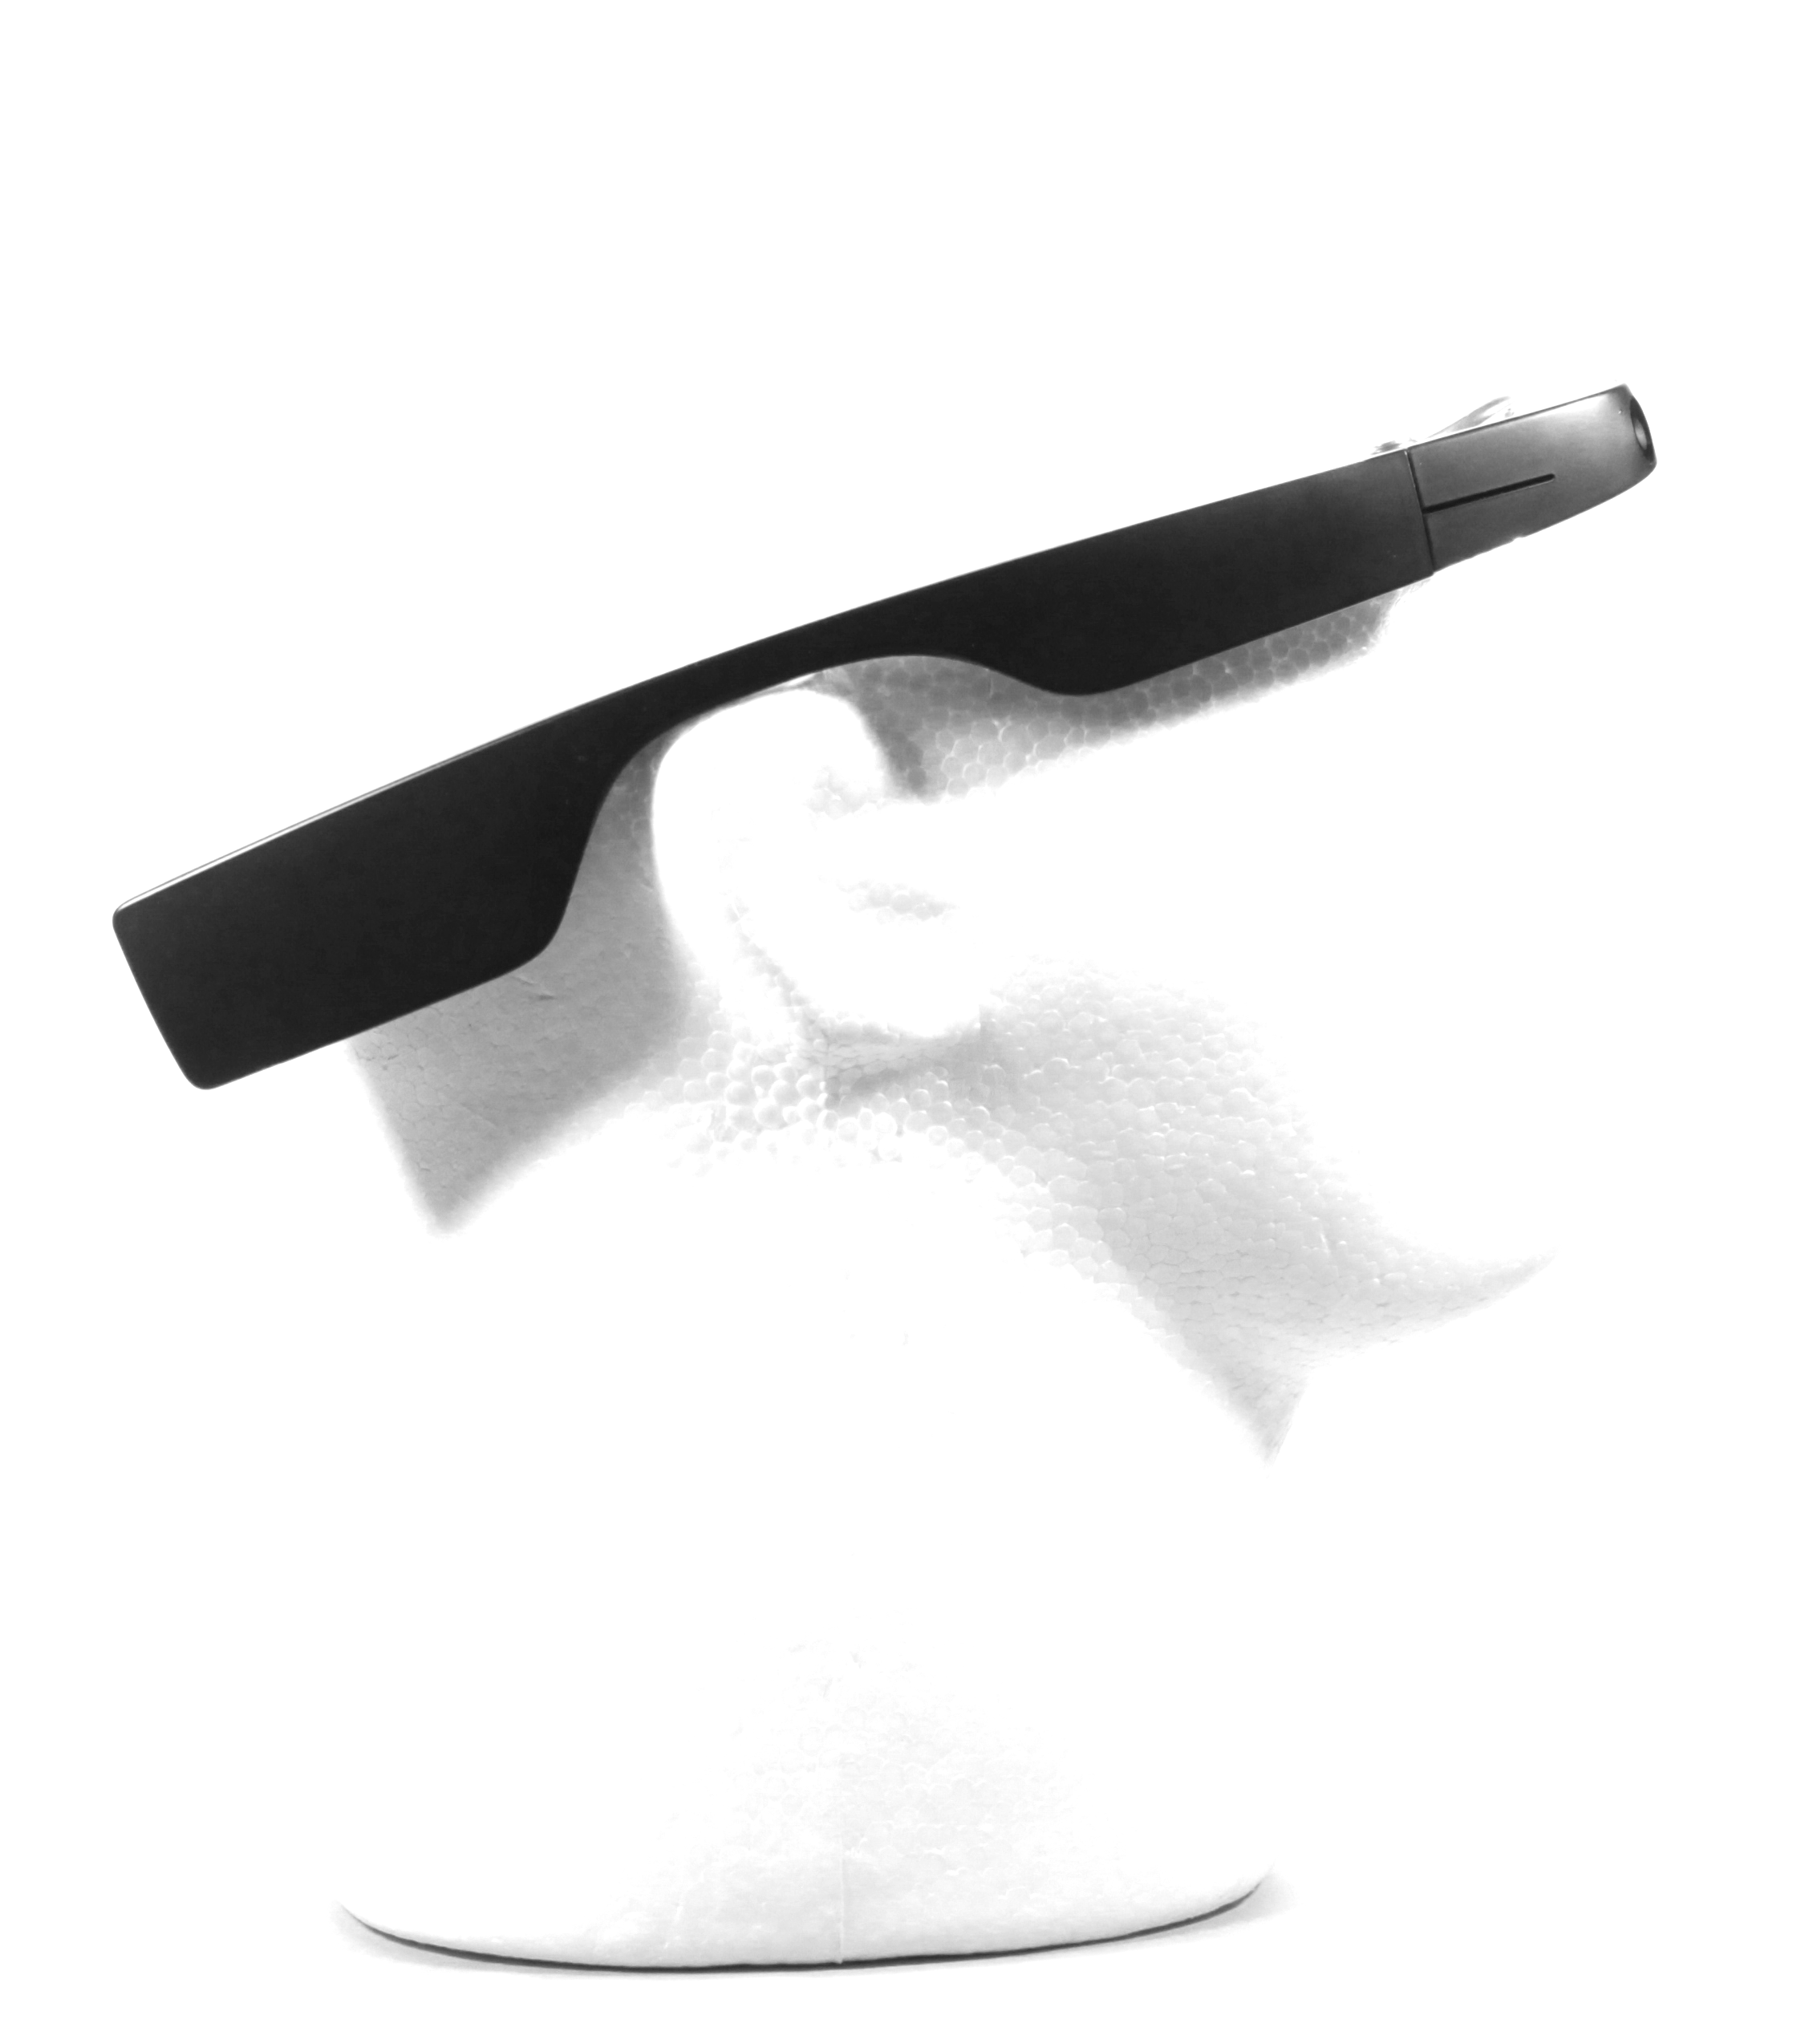 Image of Google Glass 2 from the side